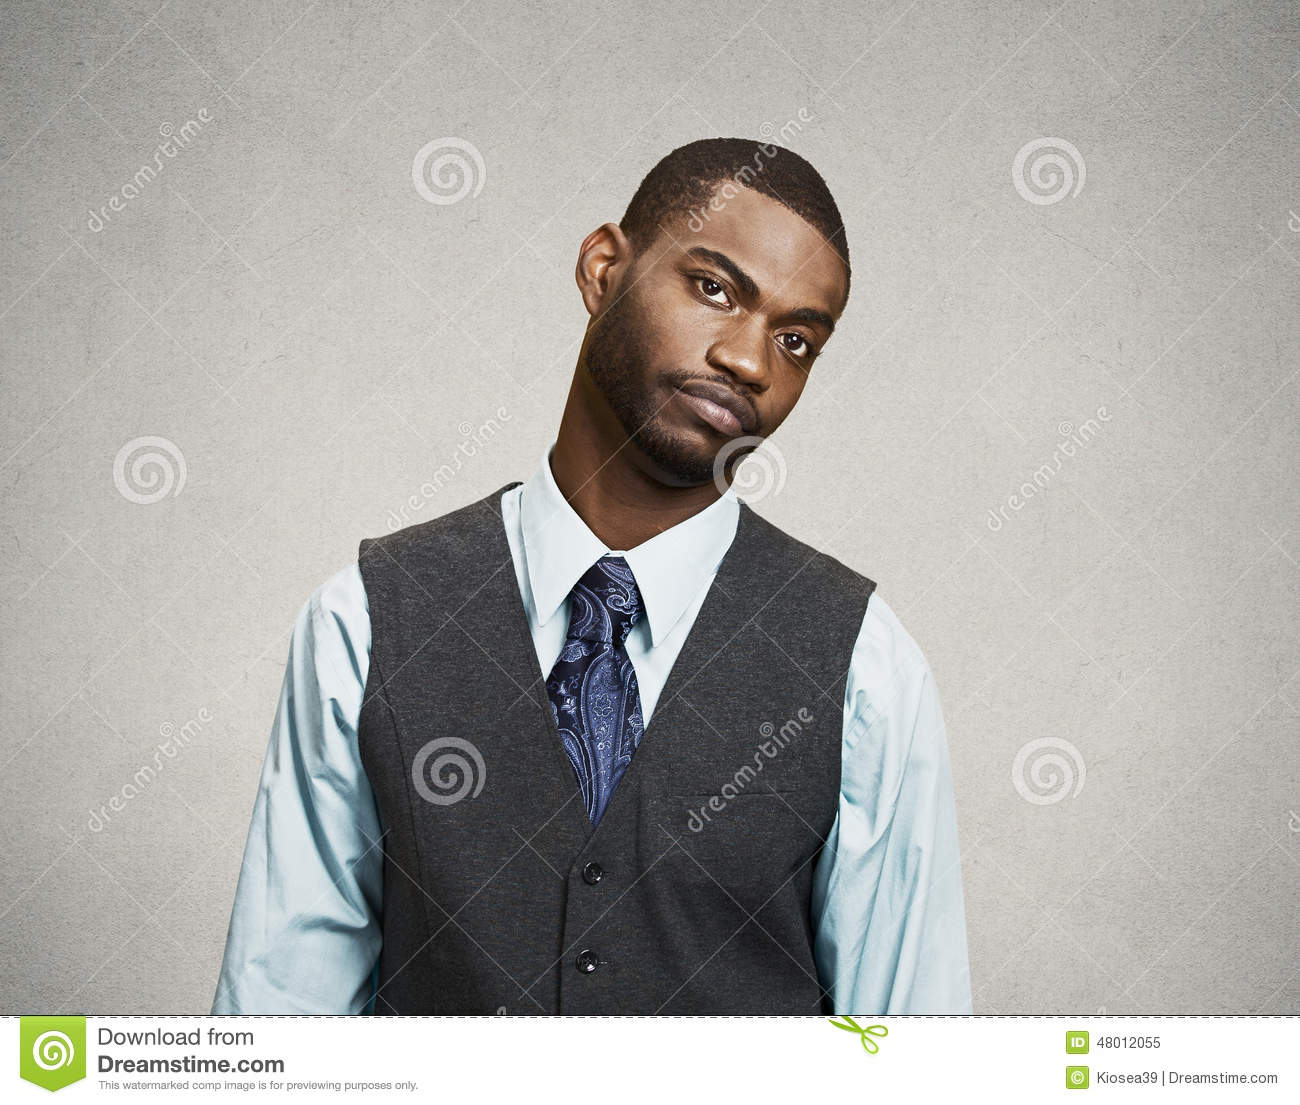 Business man with annoyed face expression